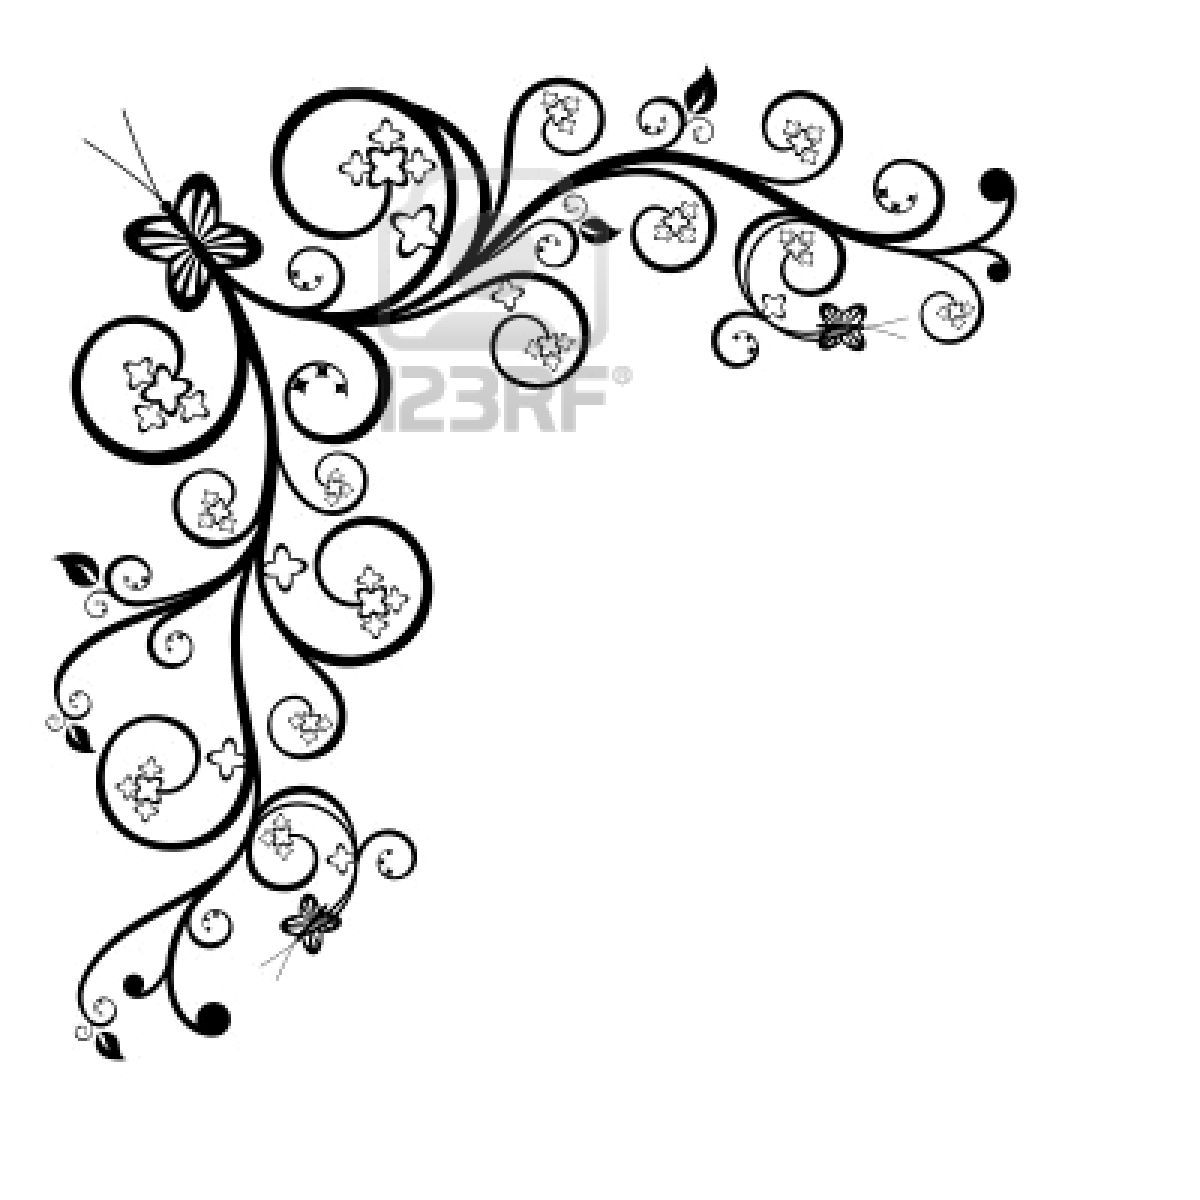 Cool Black And White Drawings Frame Clip Art Black And White